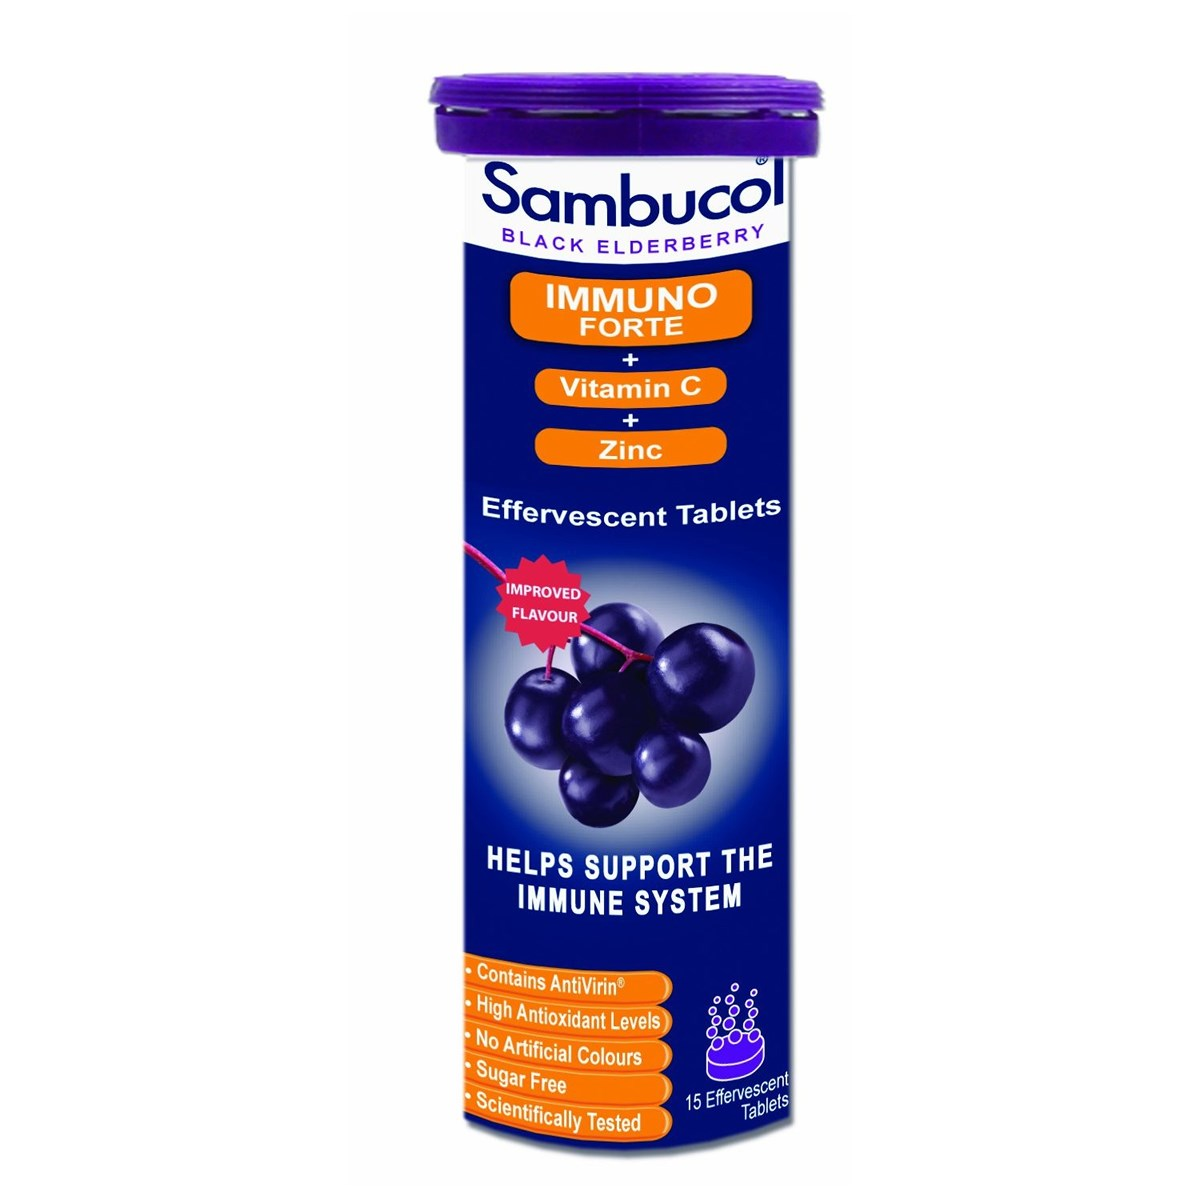 Sambucol Black Elderberry Extract Immuno Forte + Vitamin C + Zinc Effervescent Tablets